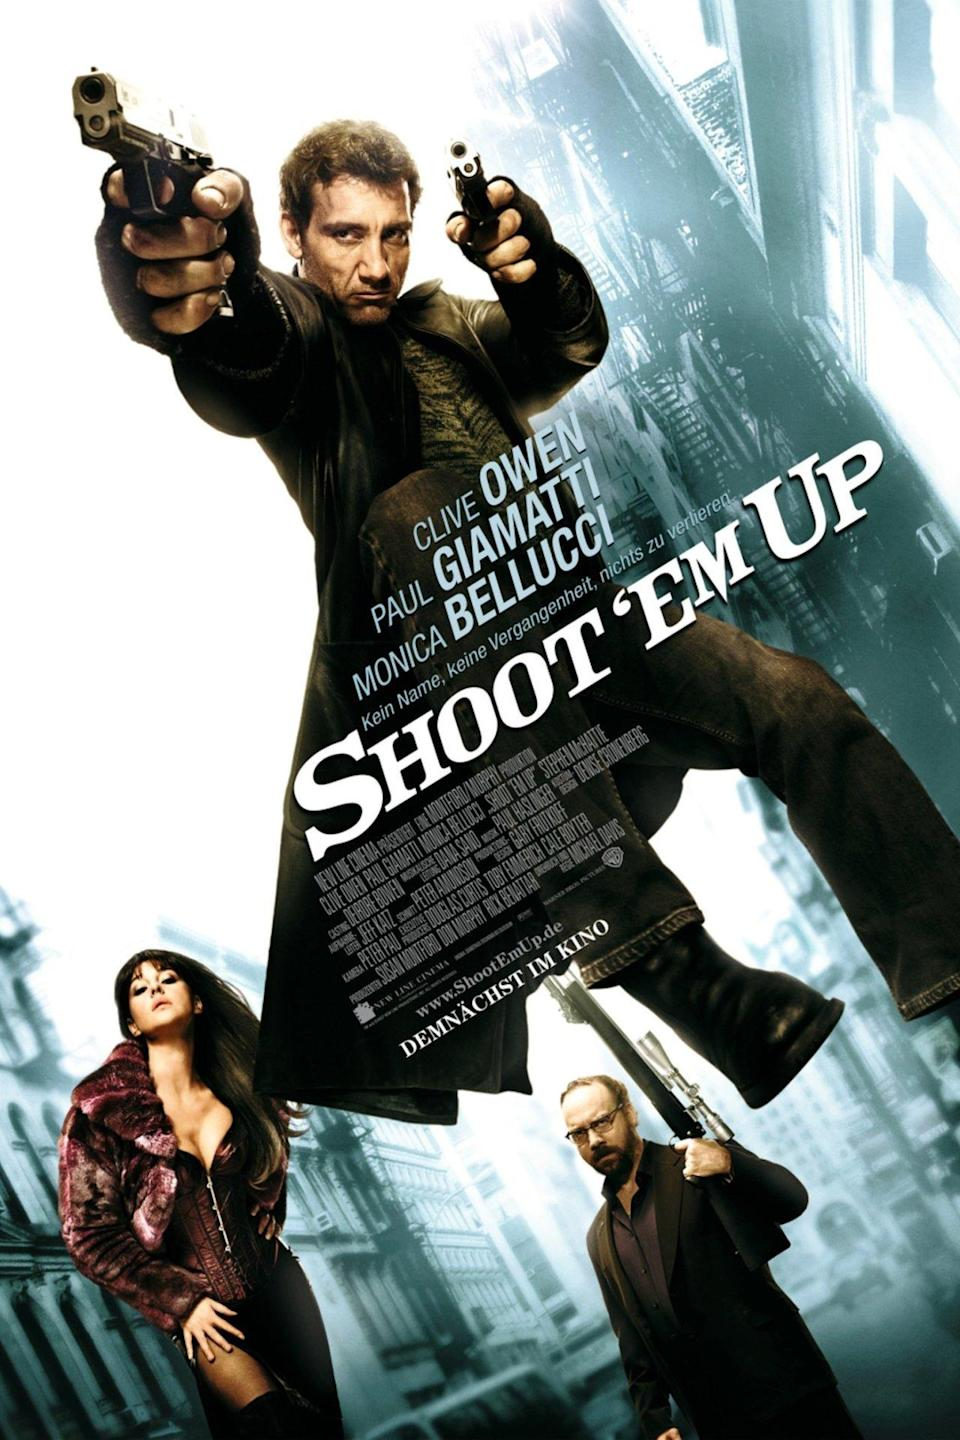 <p><b>Why it was banned:</b> For an entirely accurate reason: that it was glamorising guns. Anyone who buys a ticket to a film called 'Shoot 'Em Up' knows exactly what they're getting into; however, the Advertising Standards Authority ruled that children could be upset by the posters, as could families of gun crime victims.</p>